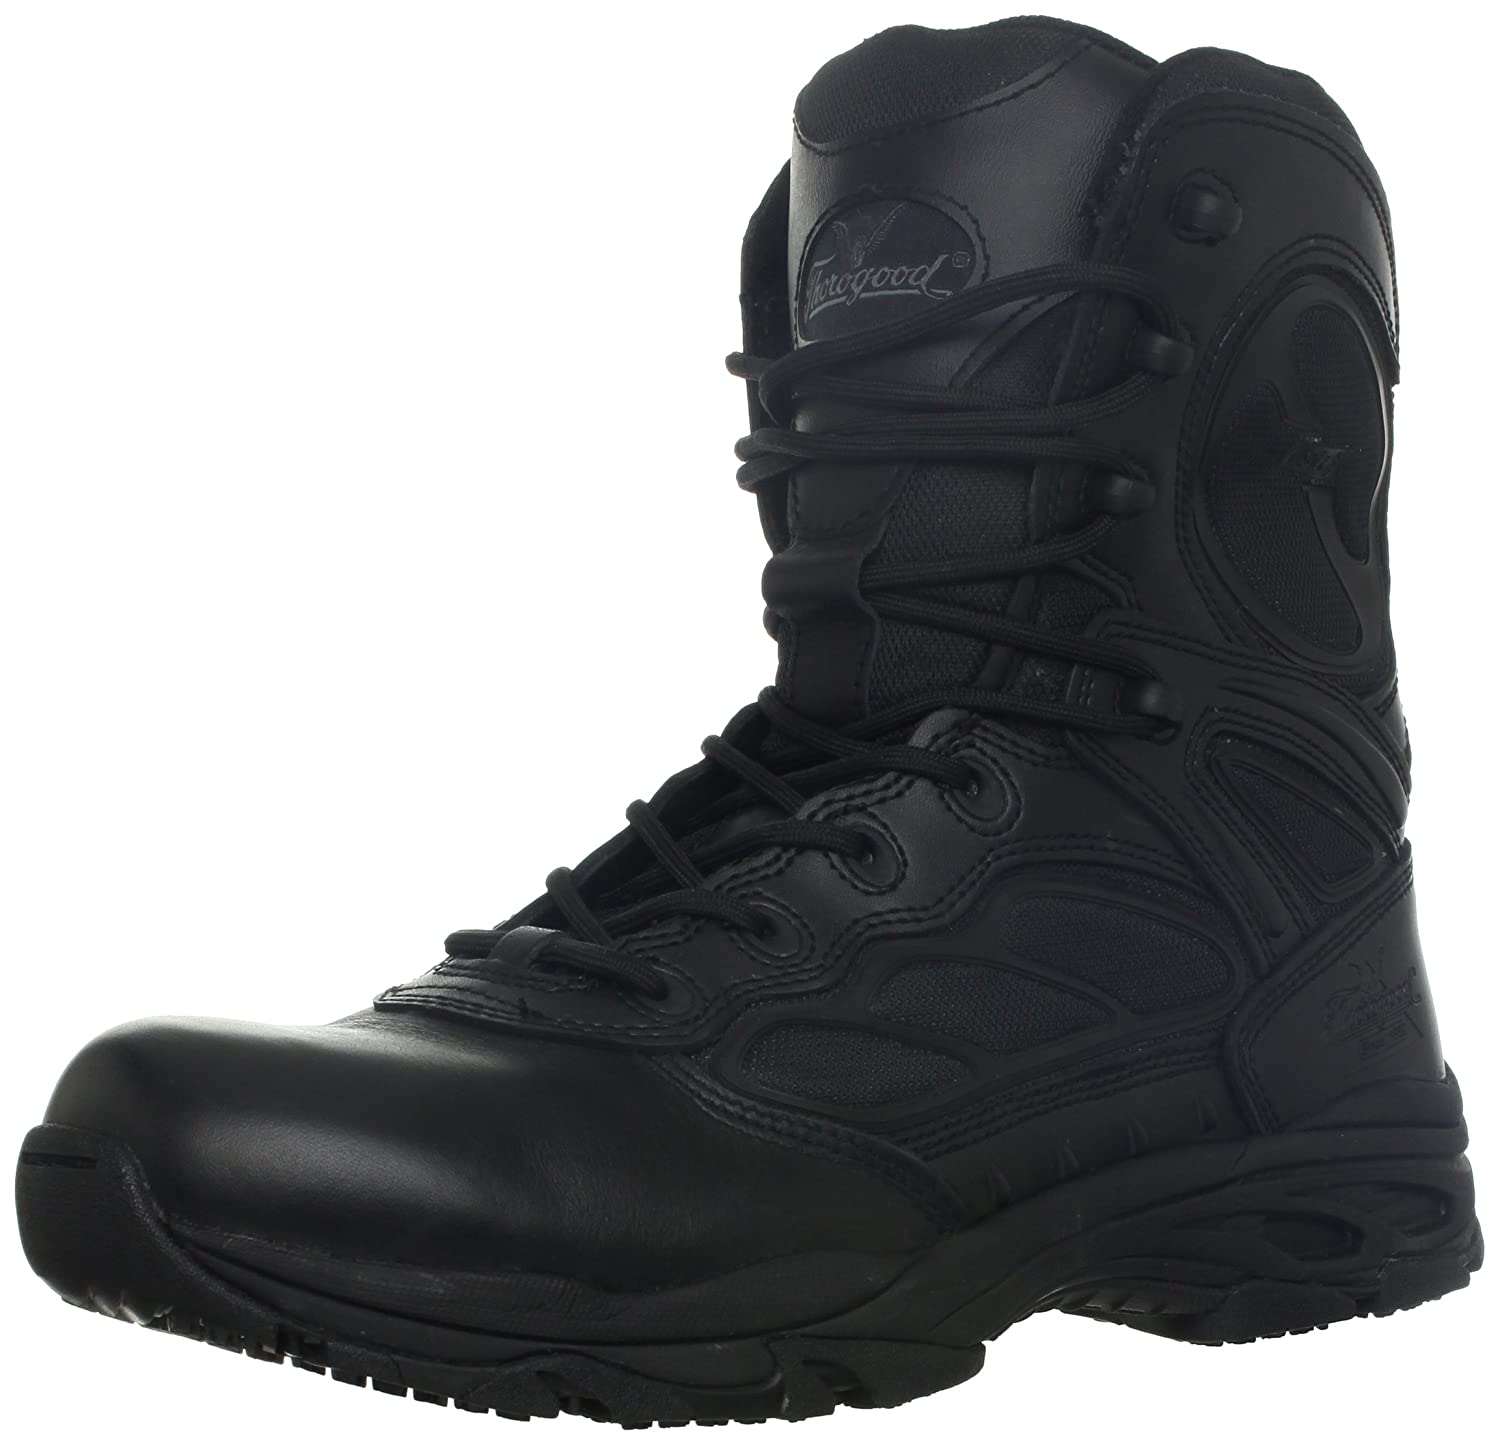 Thorogood メンズ B007KJBMII 10.5 D(M) US|Black/Leather Nylon Black/Leather Nylon 10.5 D(M) US